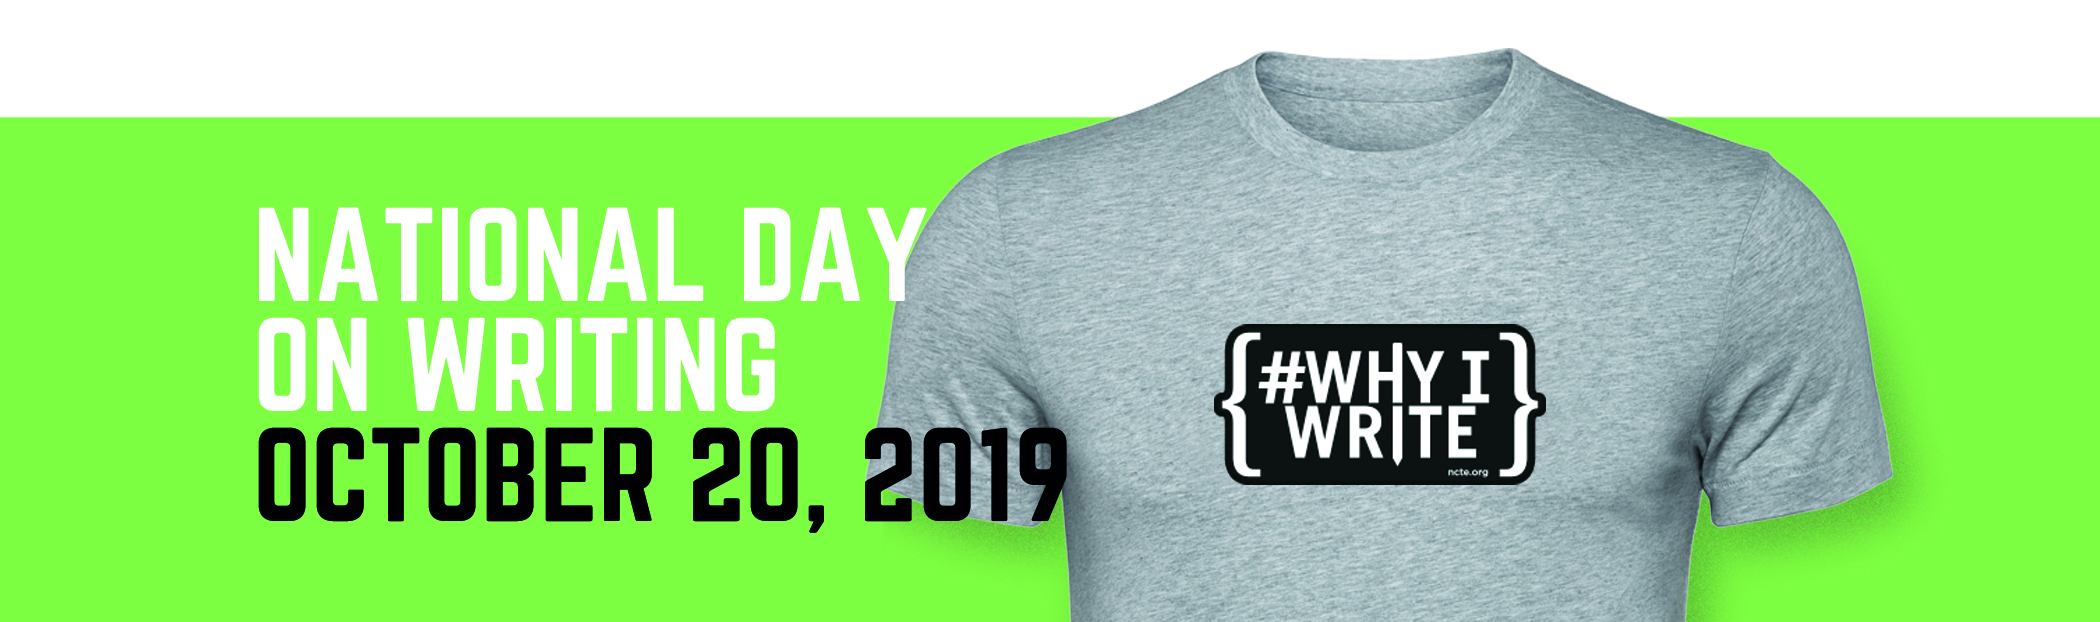 National Day on Writing T-shirt 2019